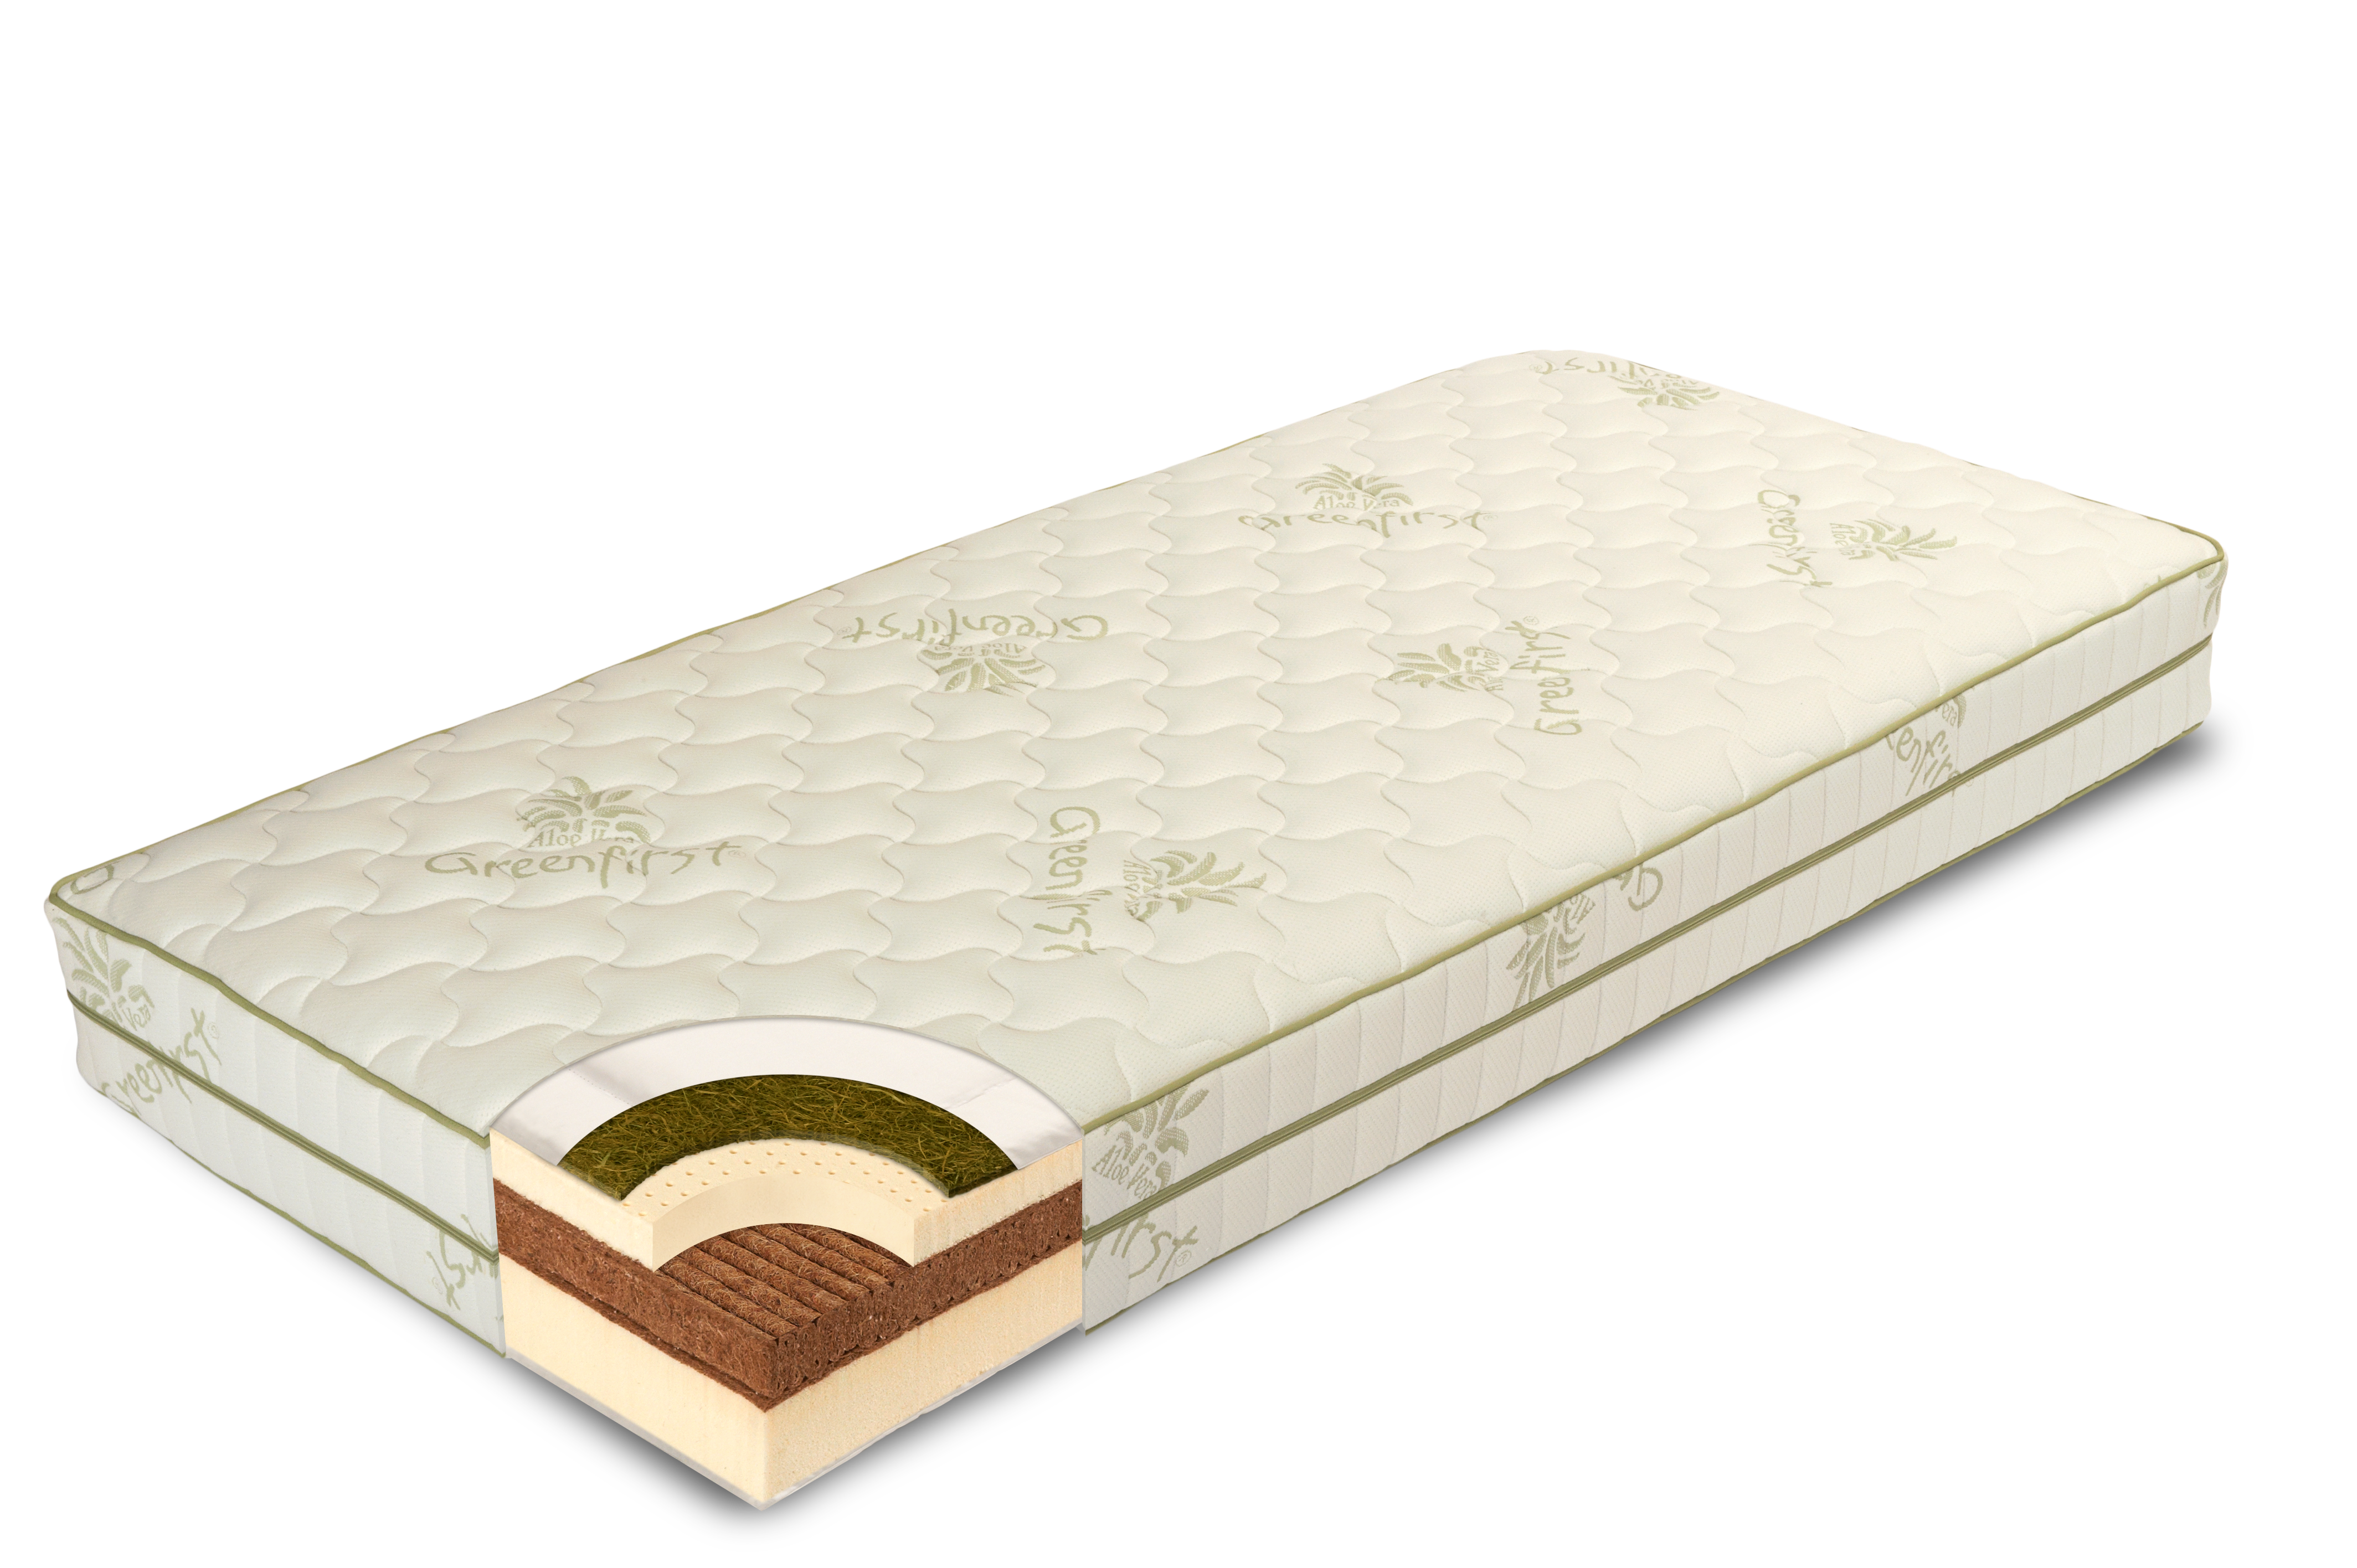 Cross section of a Coco-lat mattress